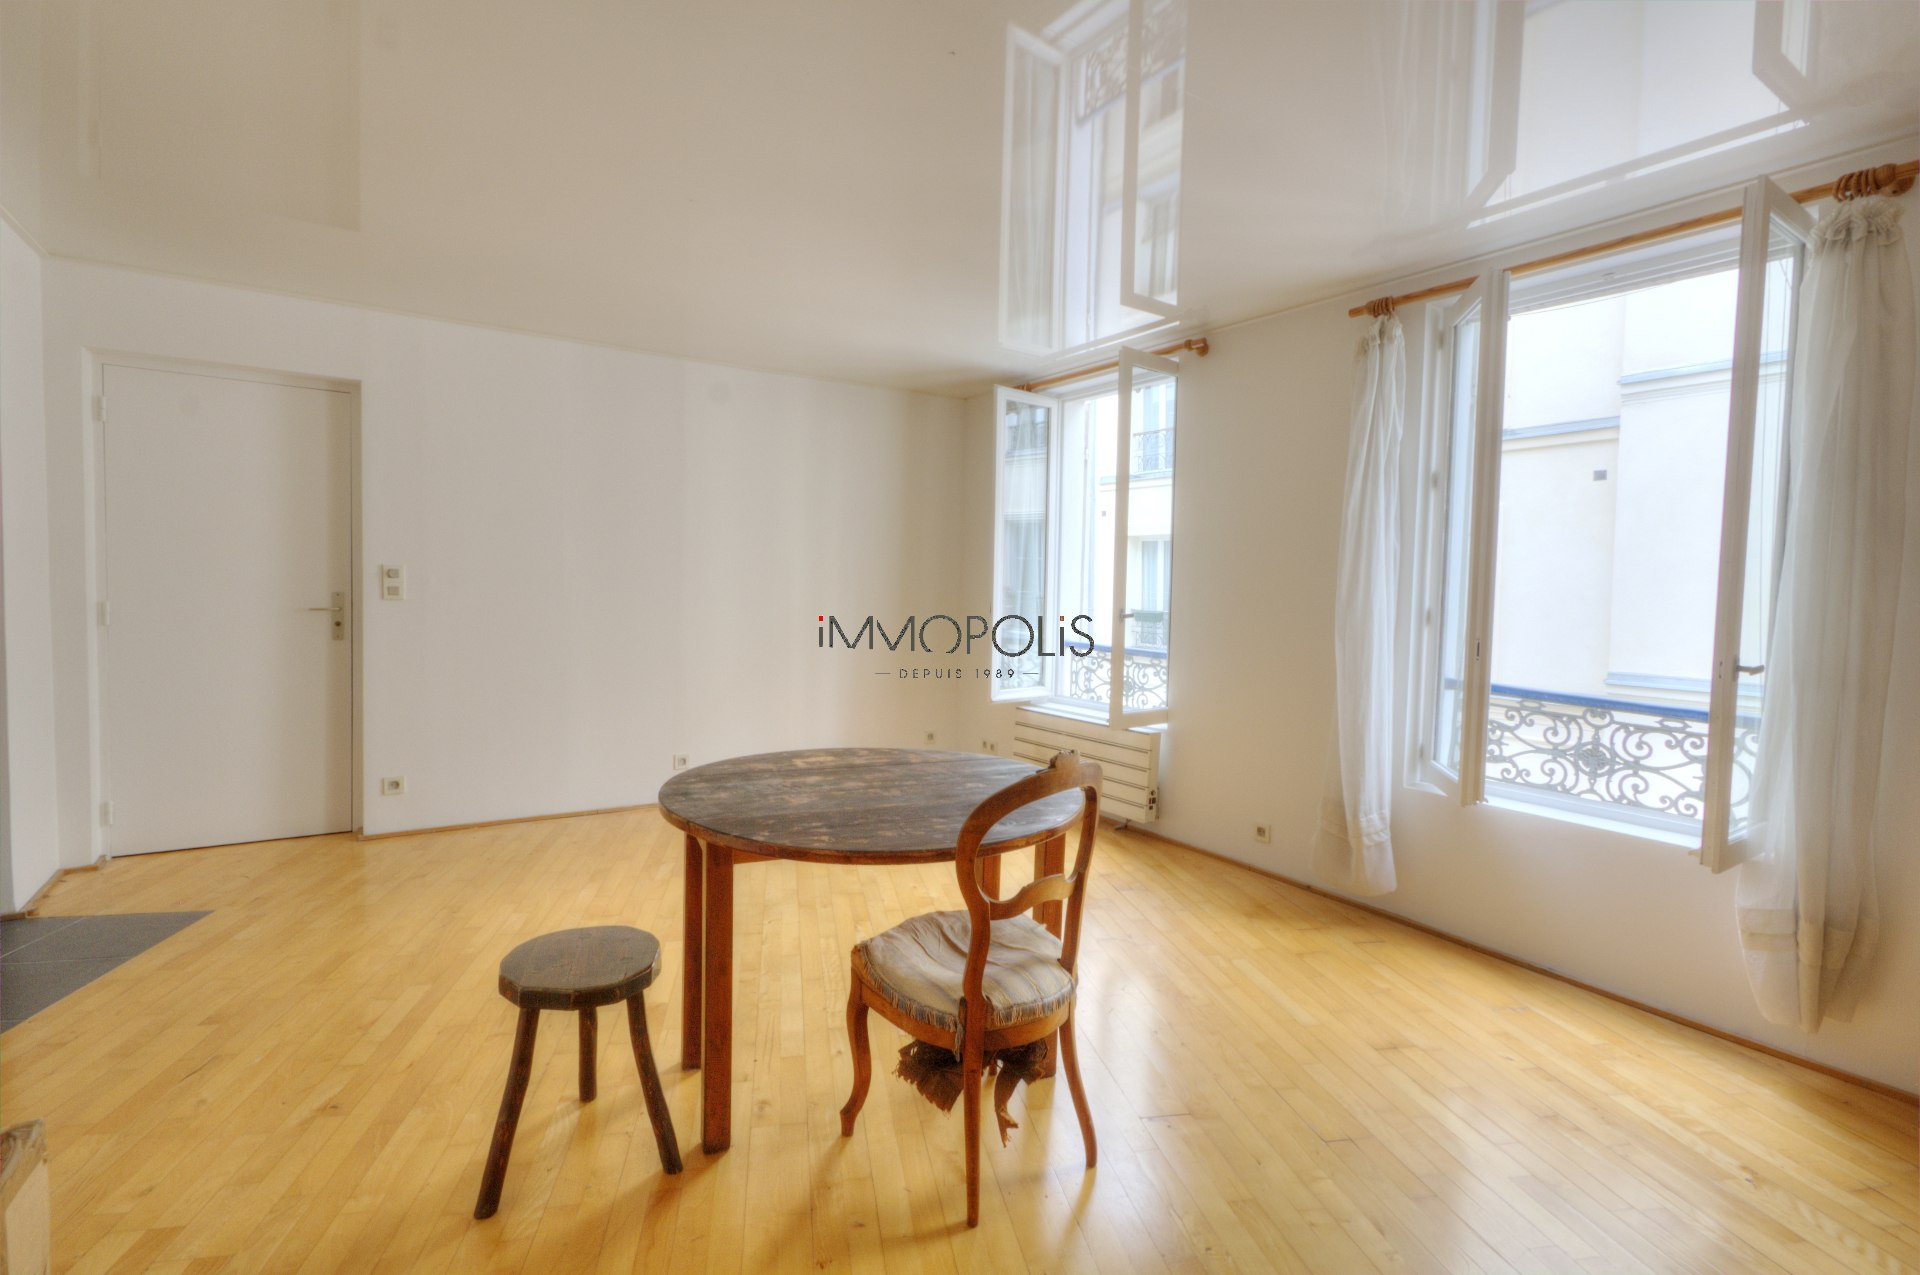 In the heart of the Abbesses, rue Berthe, beautiful 2 room apartment with a perfect plan, in good condition, crossing onto a quiet street and open courtyard! 1